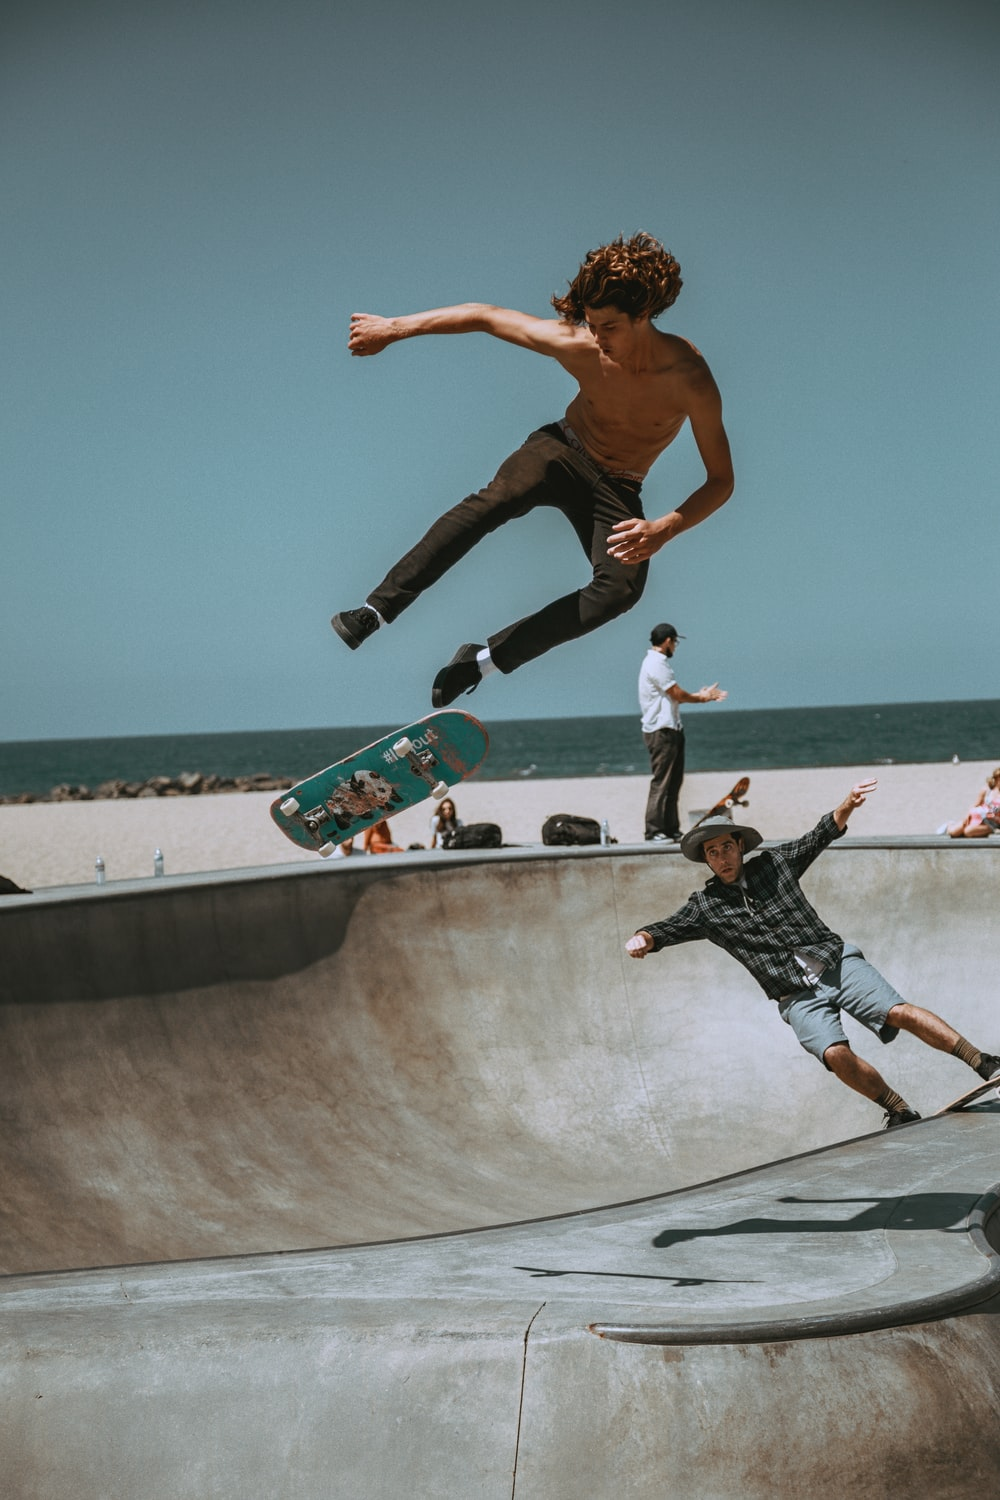 two men skateboarding on bowl ramp